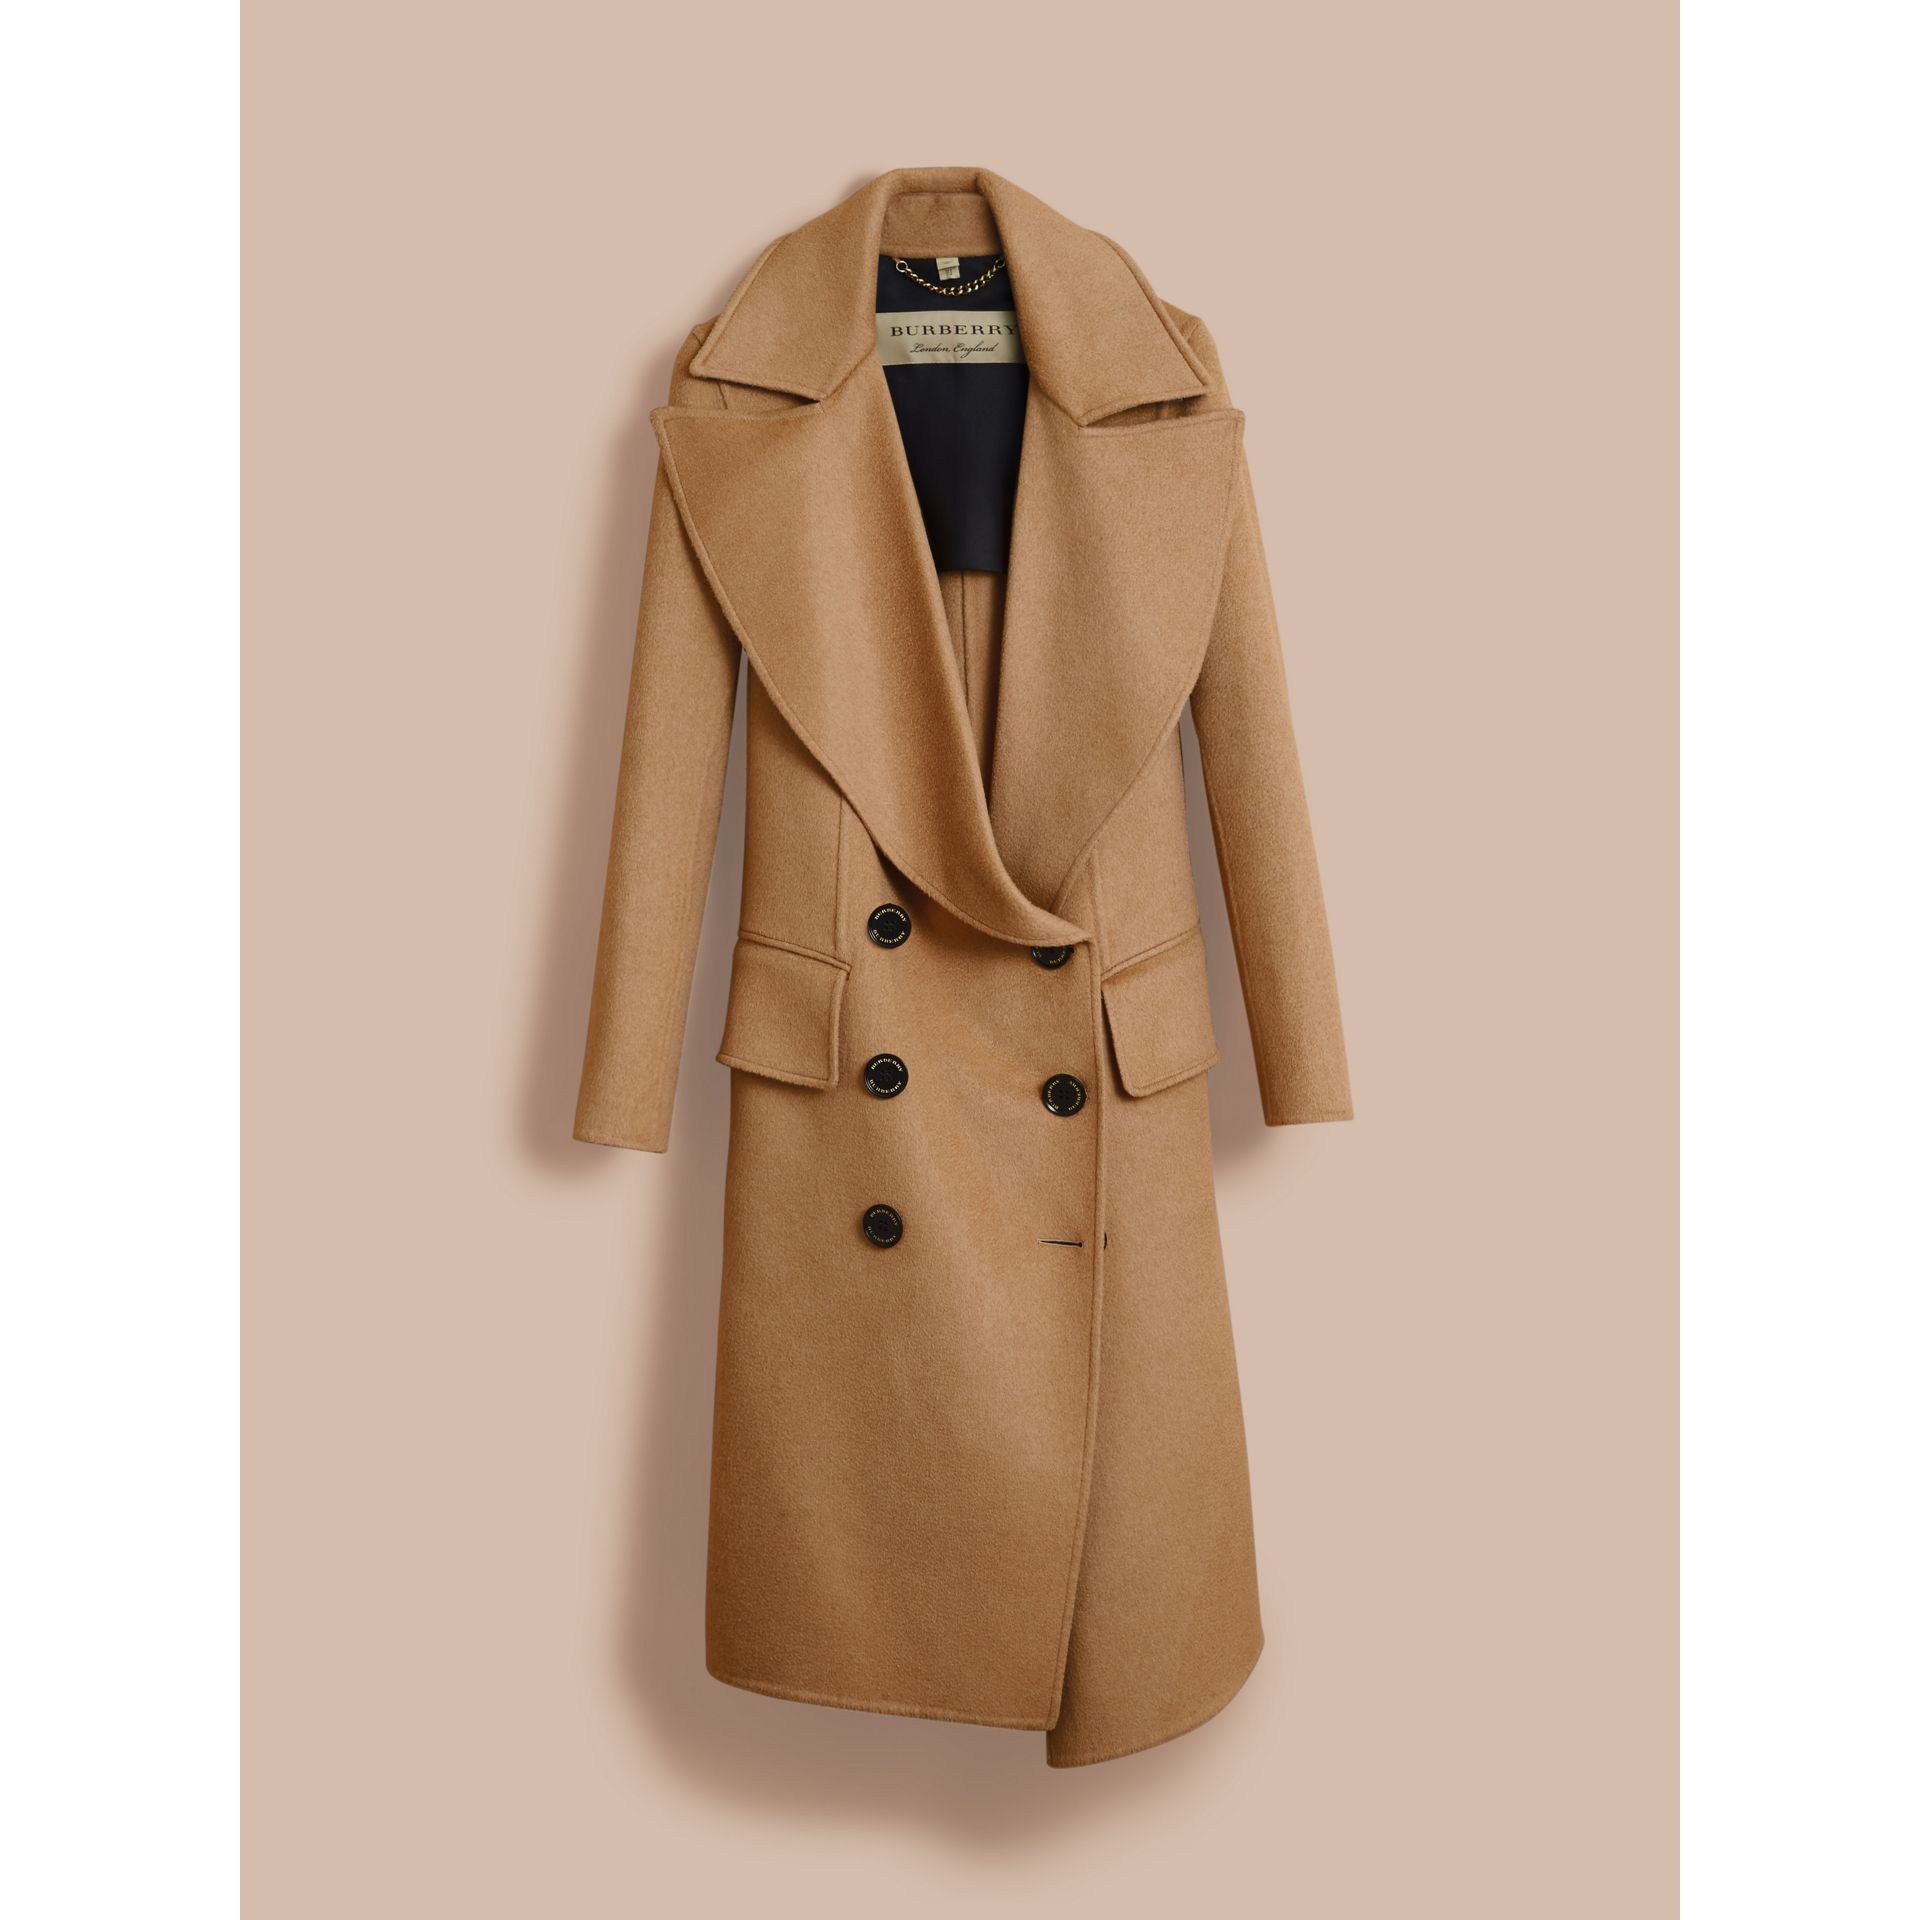 Draped Front Camel Hair and Wool Tailored Coat - Women | Burberry Canada - gallery image 4